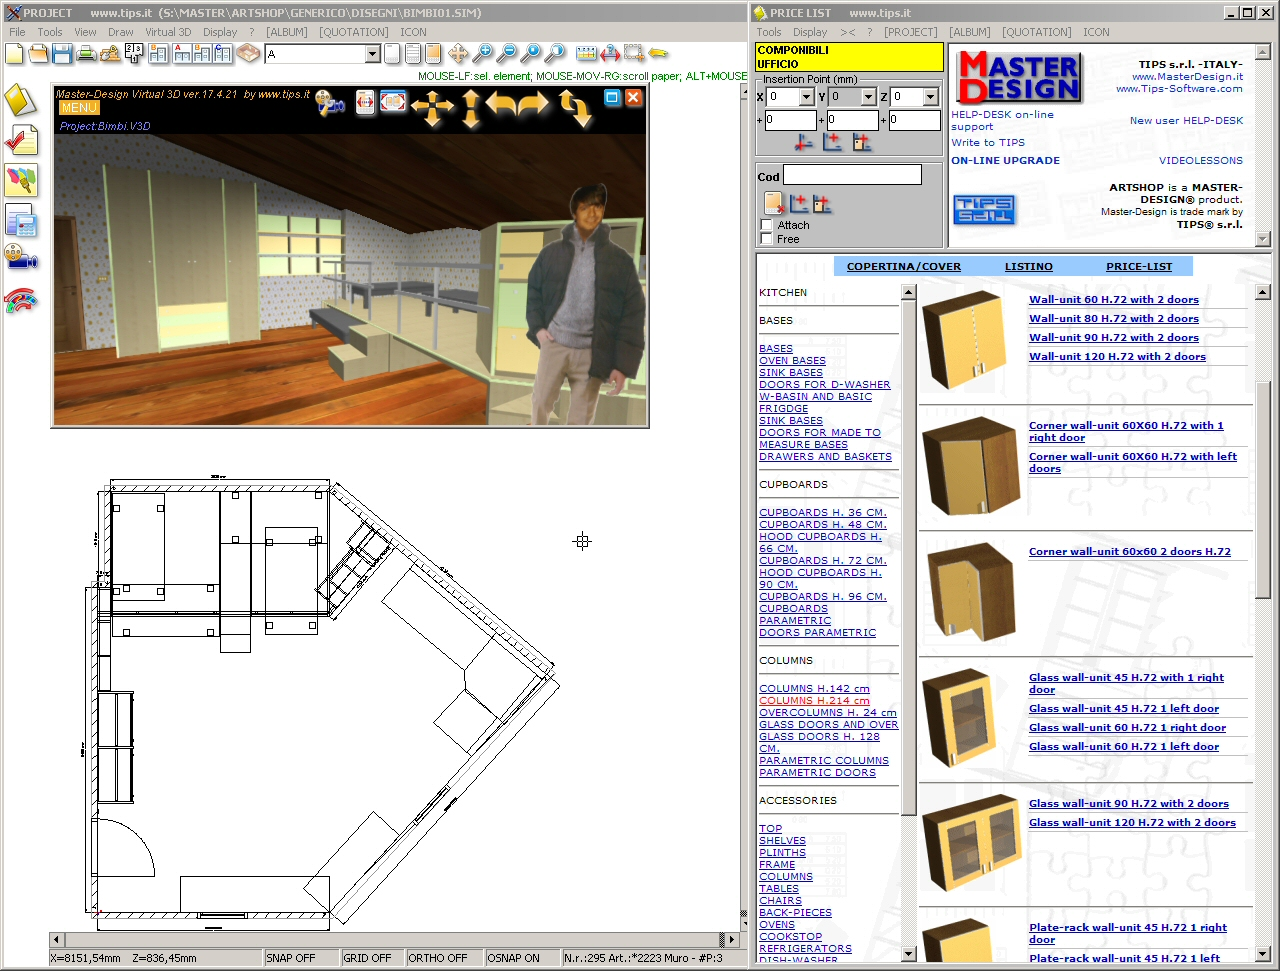 Filegets master design art shop x lite screenshot for Furniture building software